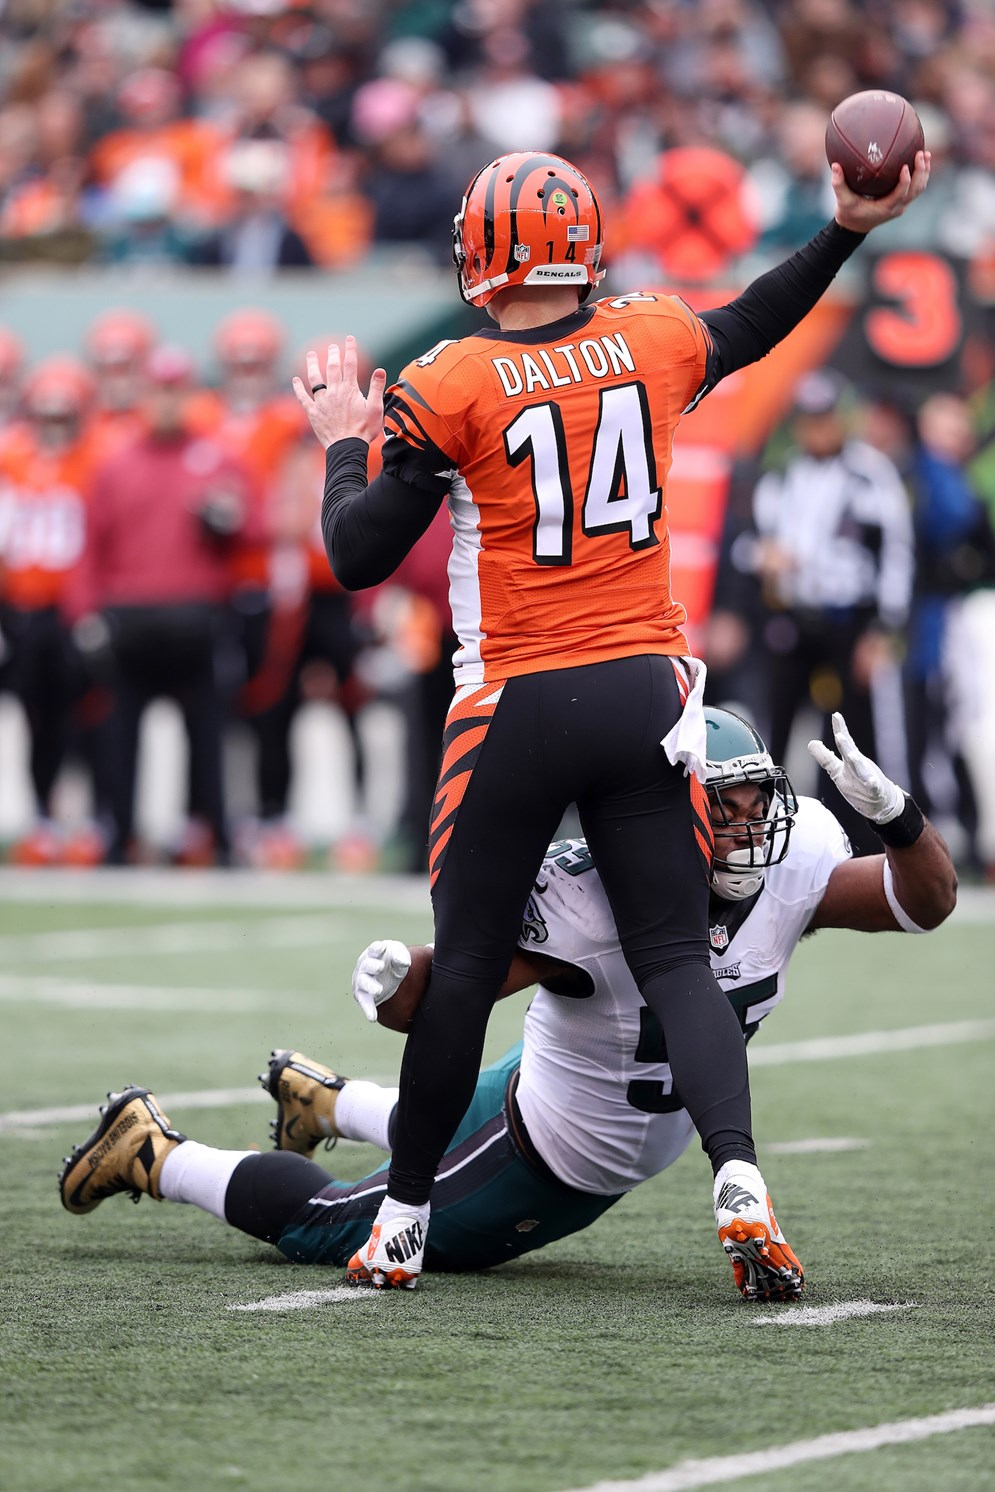 The Bengals Andy Dalton gets hit low, drawing a penalty. Low hits on quarterback will be strictly enforced by NFL game officials in 2017. (Paul Spinelli via AP)